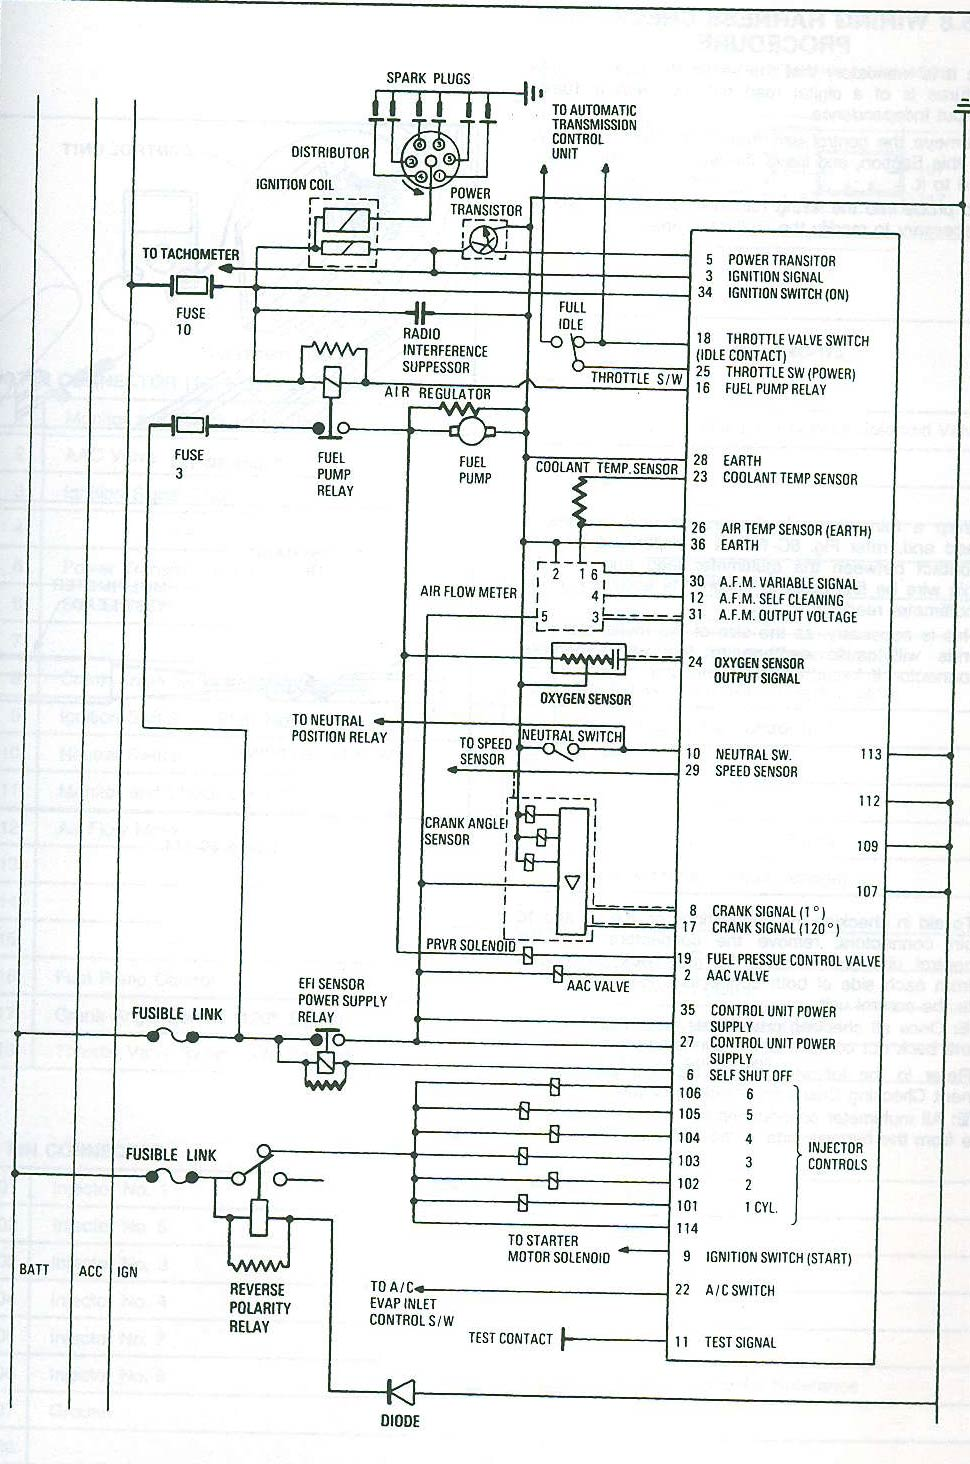 ecuwiring vl commodore dash wiring diagram efcaviation com vz commodore ecu wiring diagram at bayanpartner.co